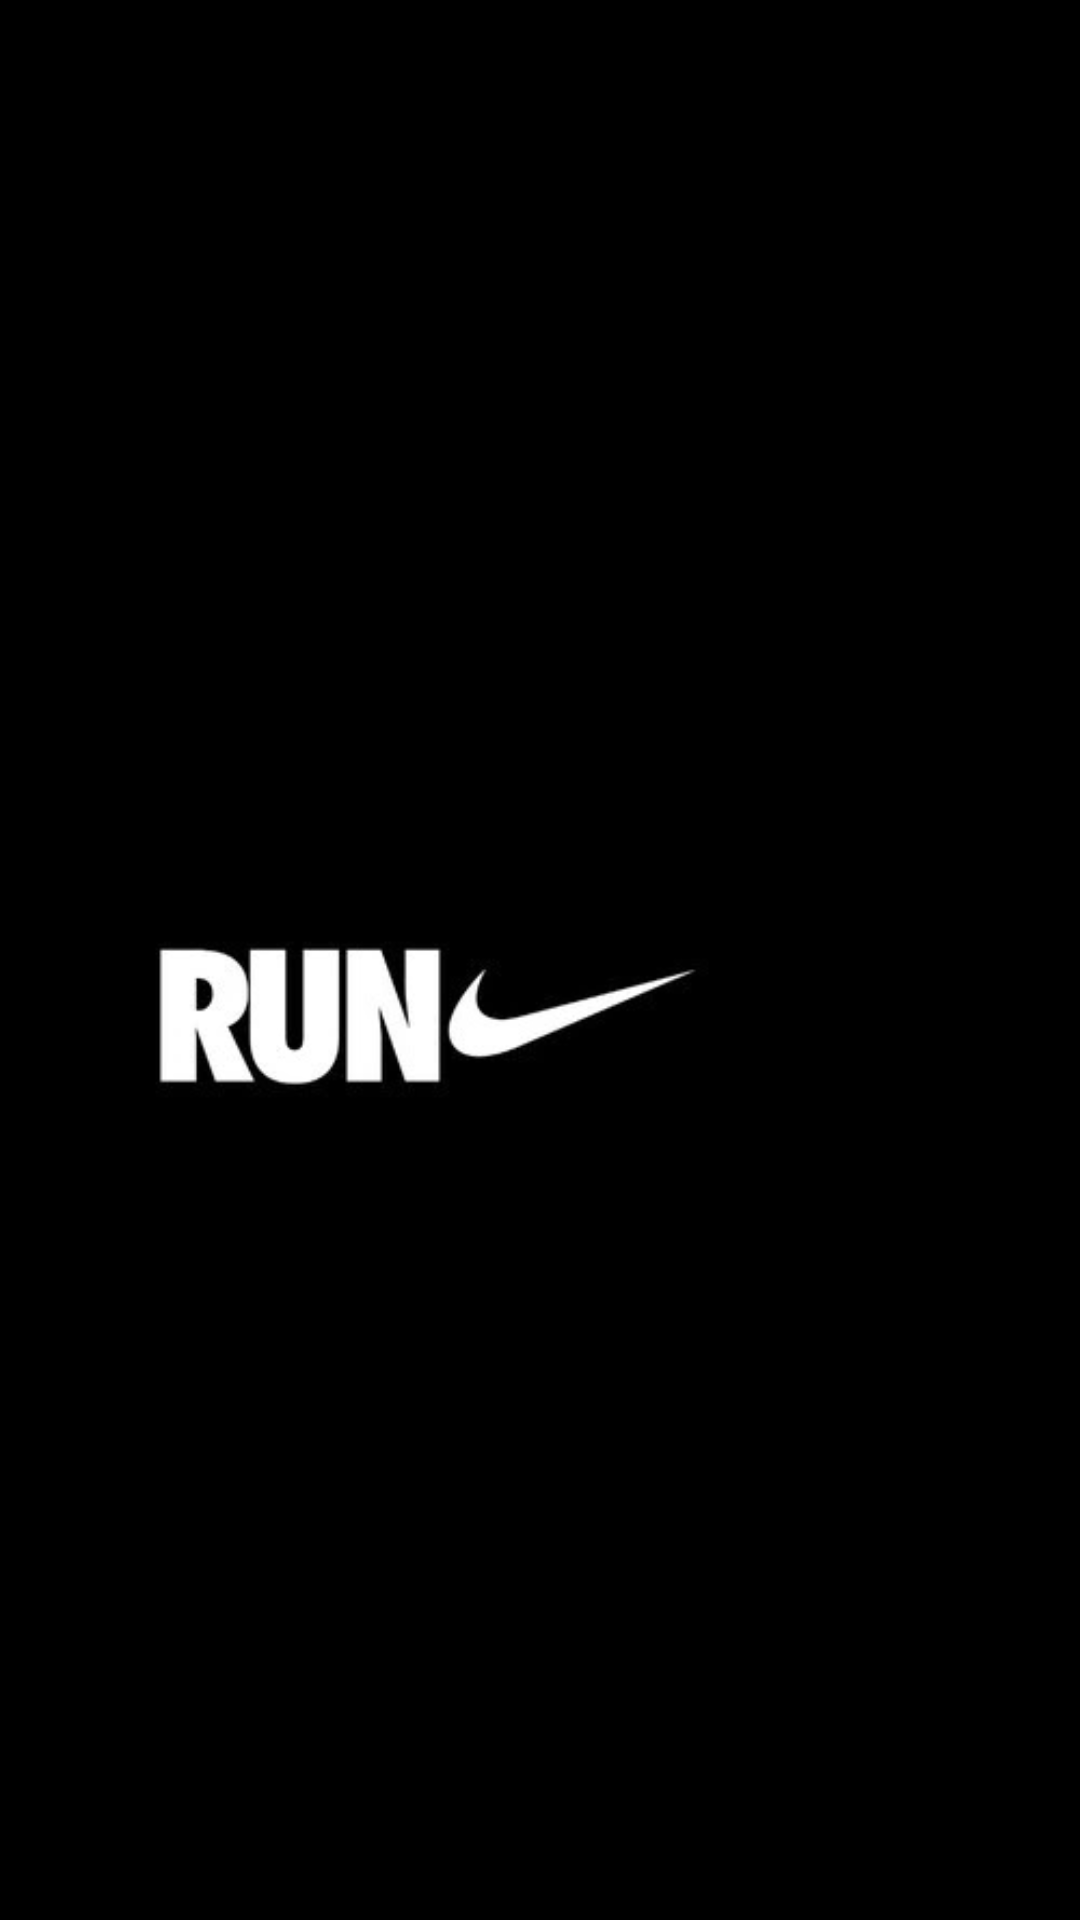 I Am Behind You Nike Motivation Quotes Nike Wallpaper Backgrounds Nike Quotes